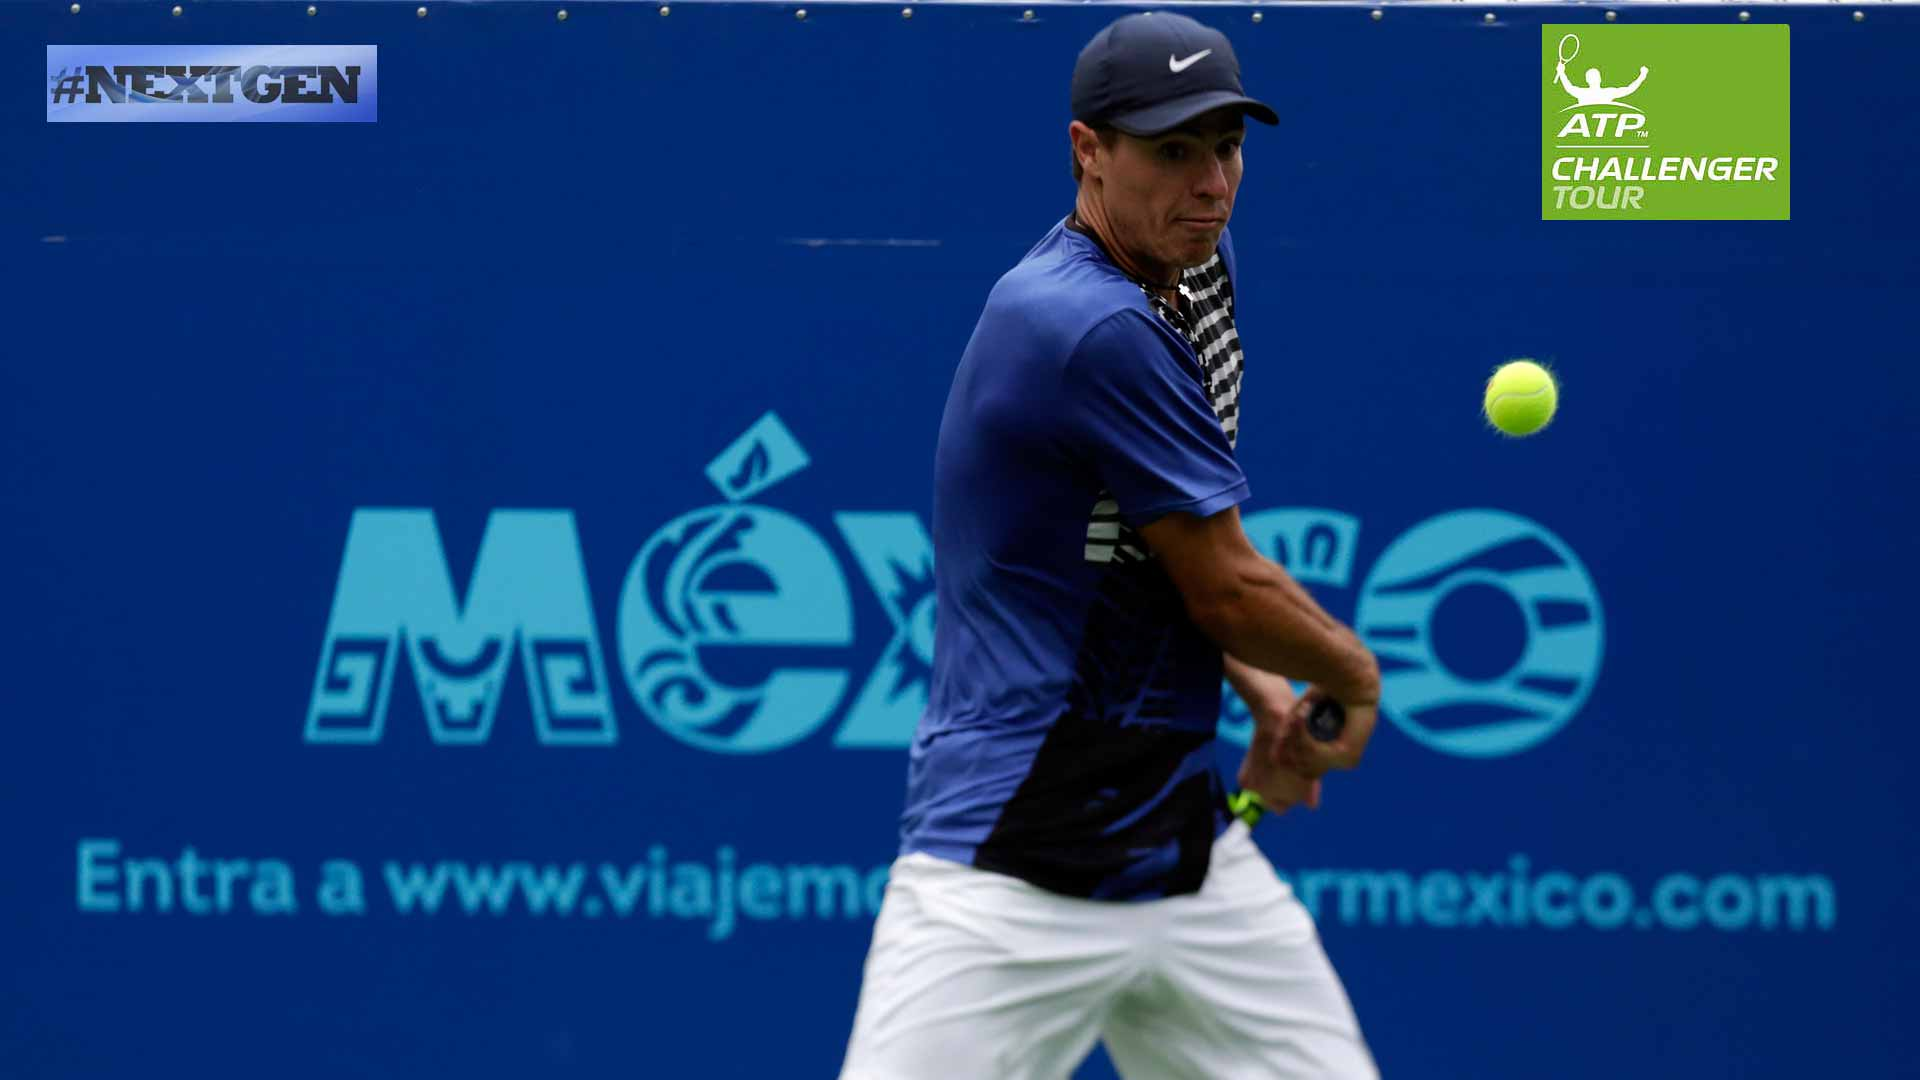 Ernesto Escobedo looks for another Challenger title in Monterrey.